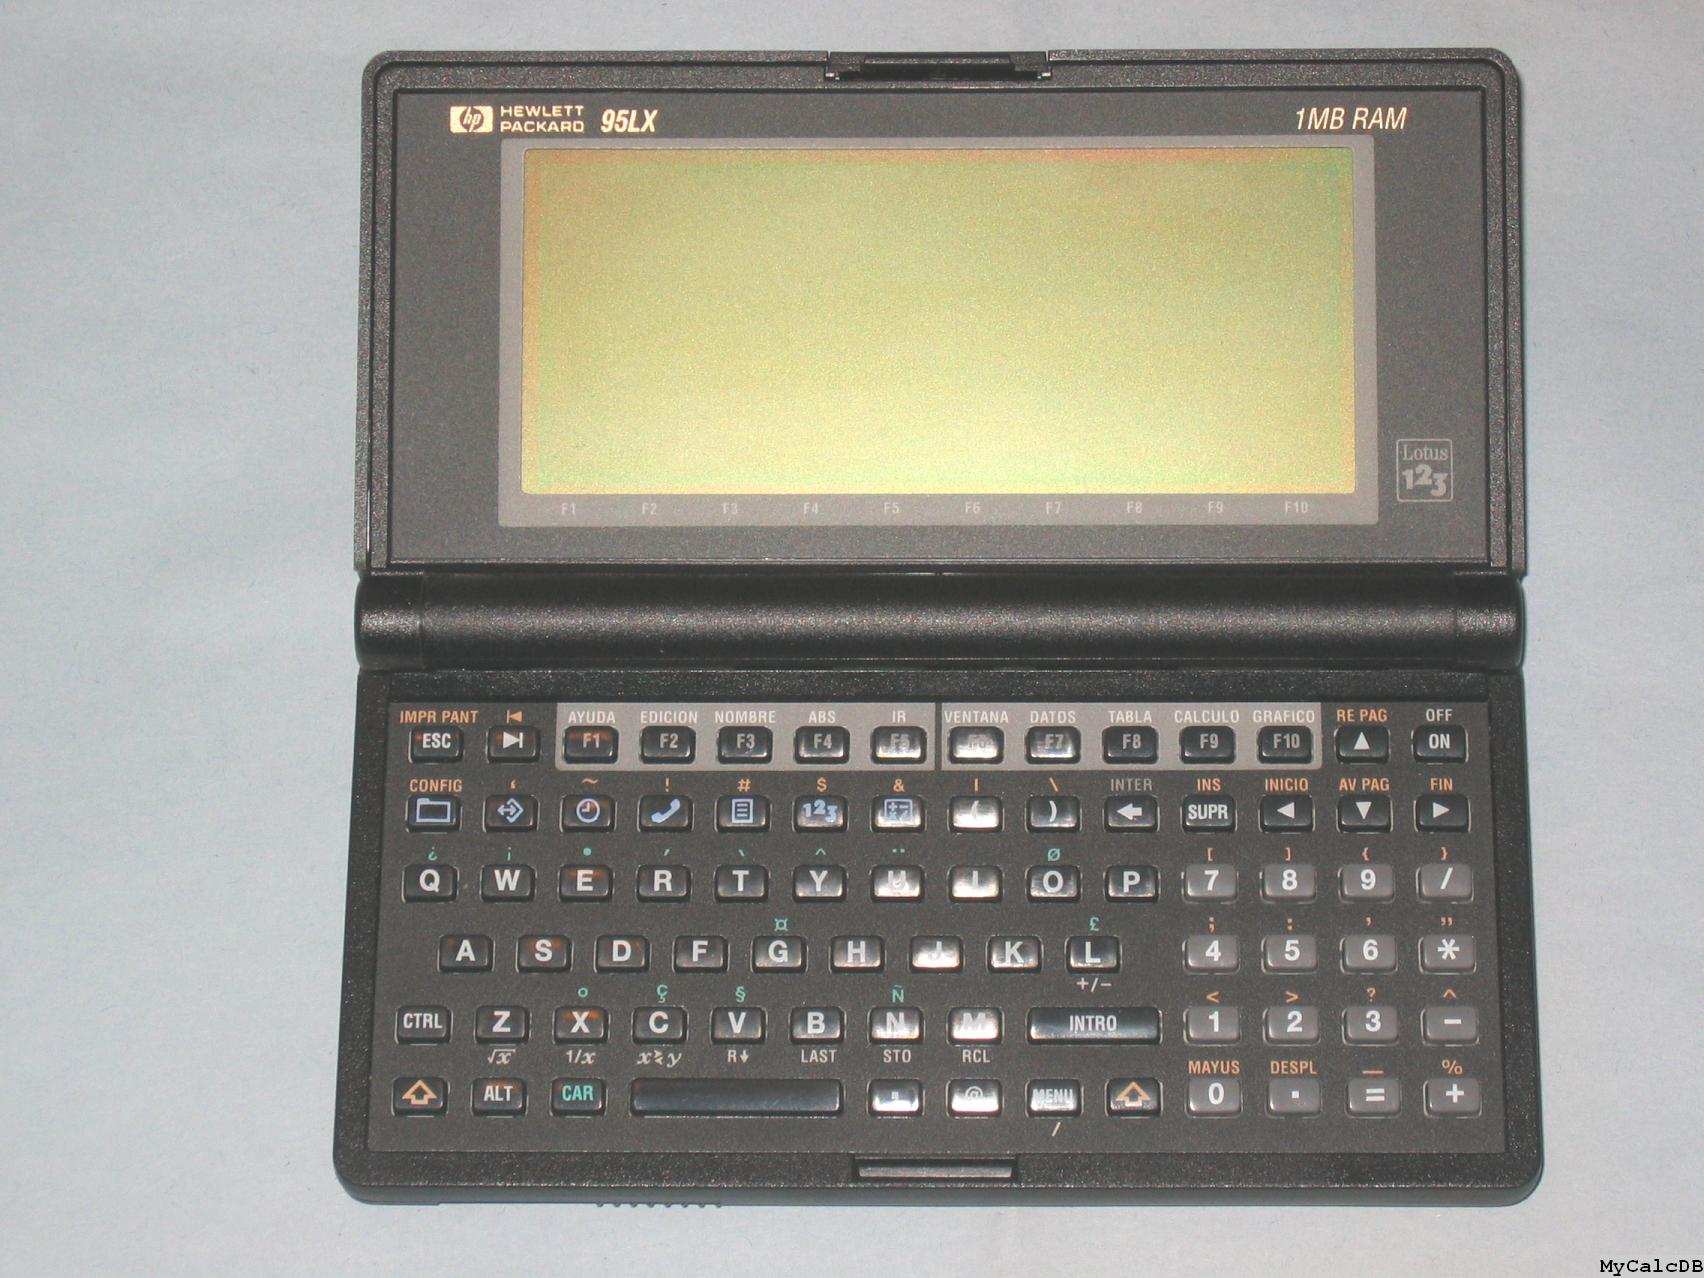 Hewlett-Packard 95LX 1MB